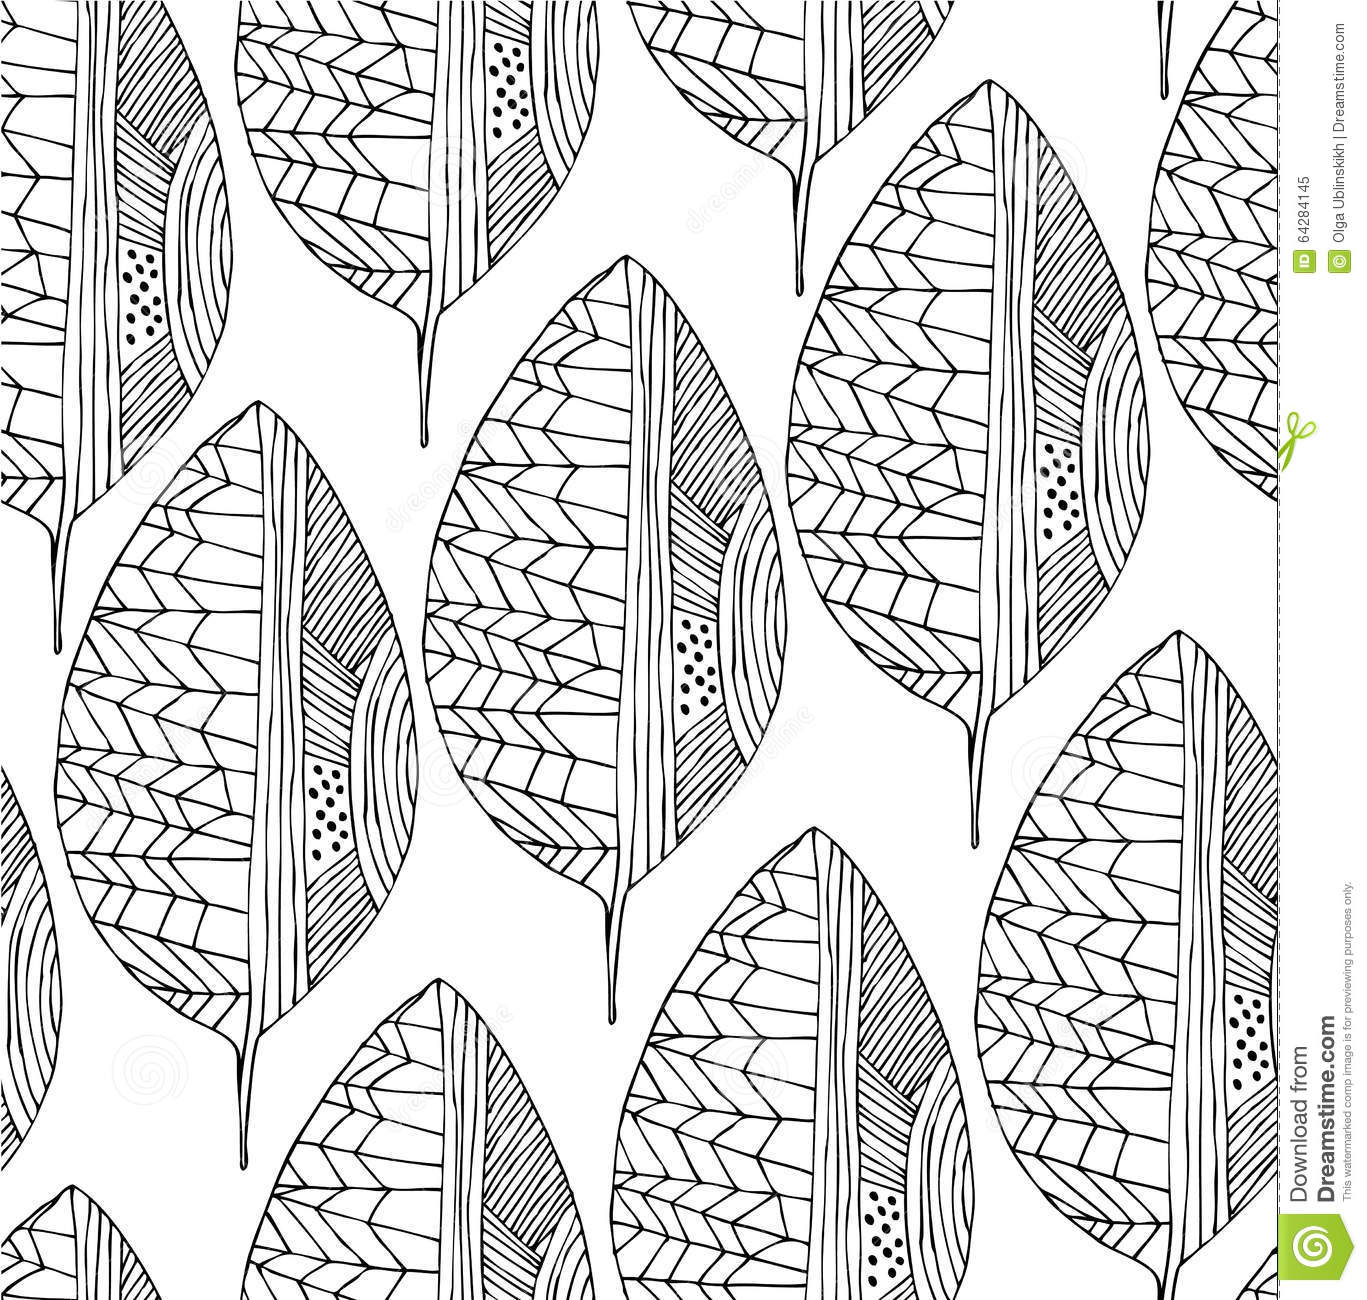 Line Drawing Leaf : Seamless drawing pattern with decorative leaves vector